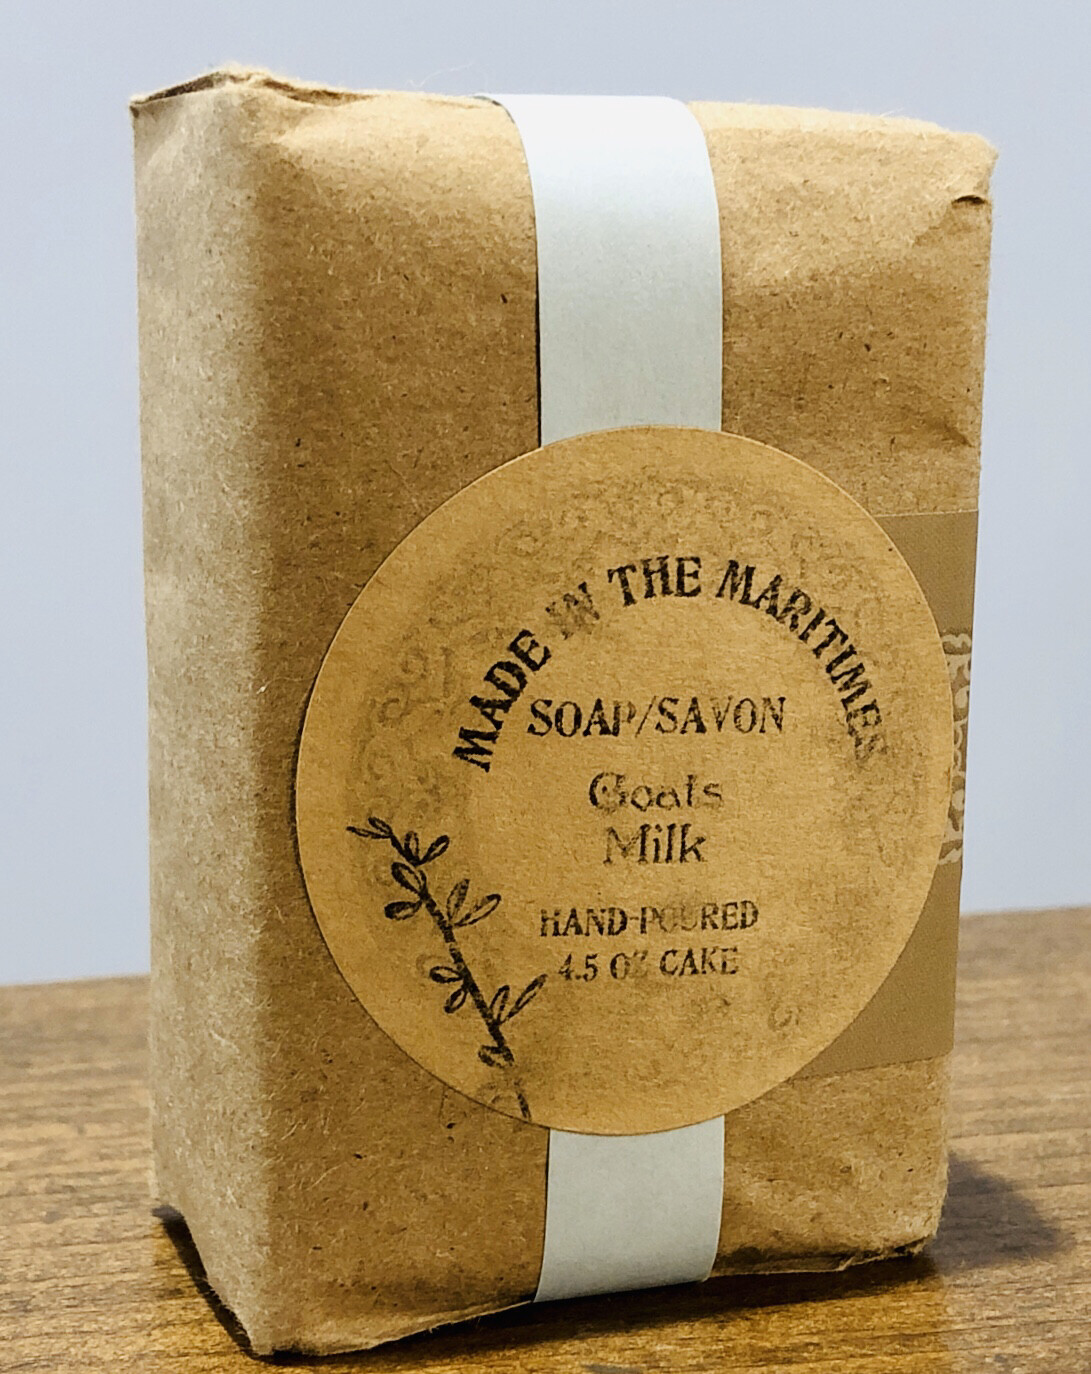 Made in the Maritimes Soap